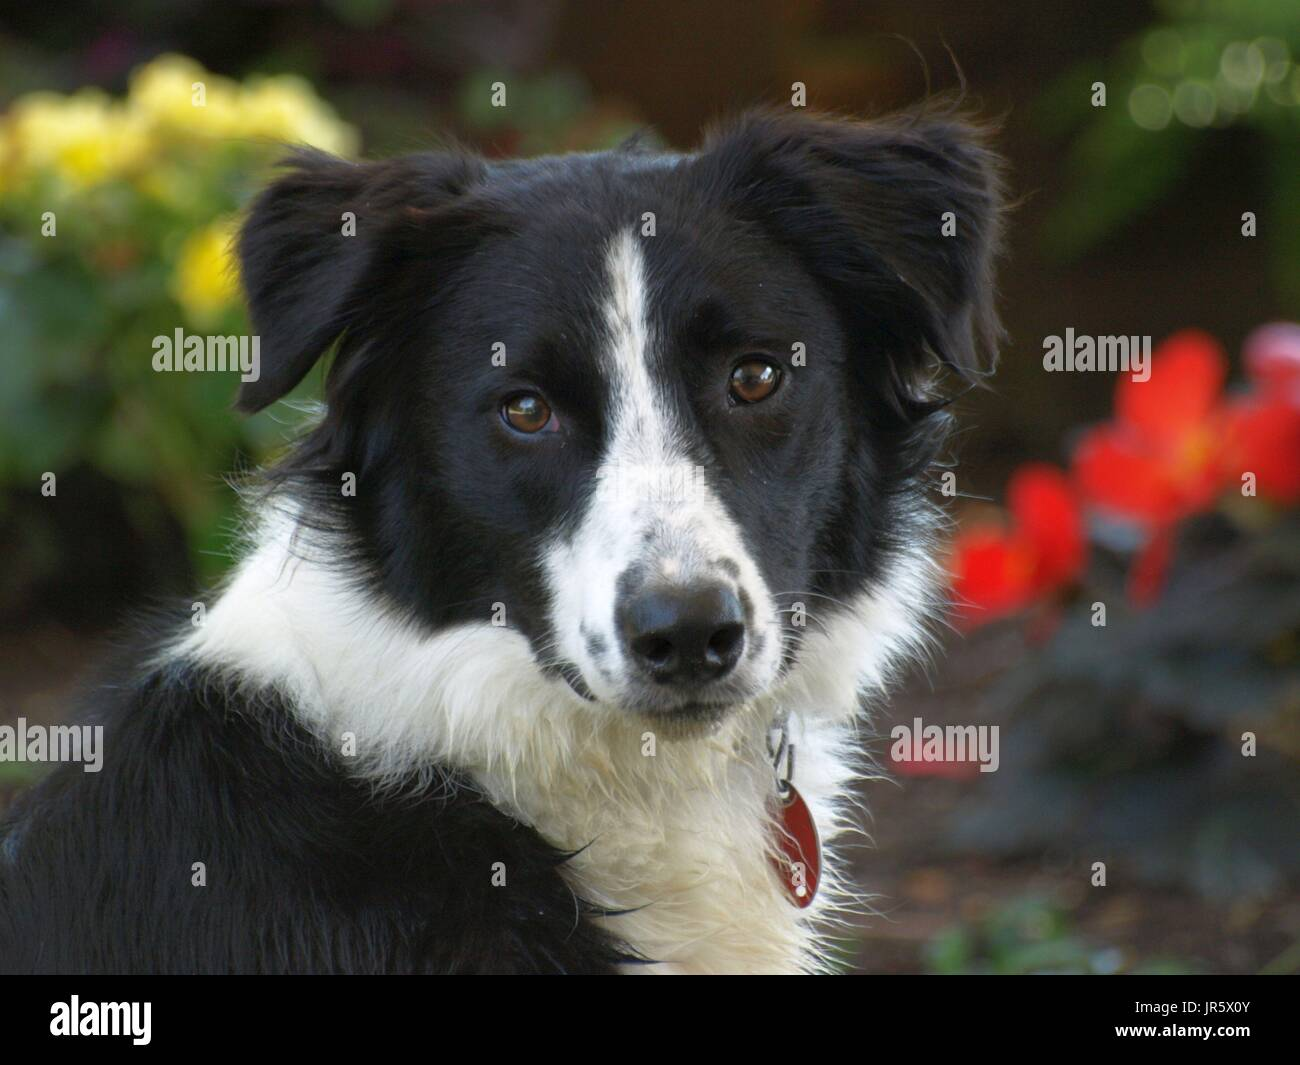 Black and white Border Collie dog with amber eyes close up shots - Stock Image